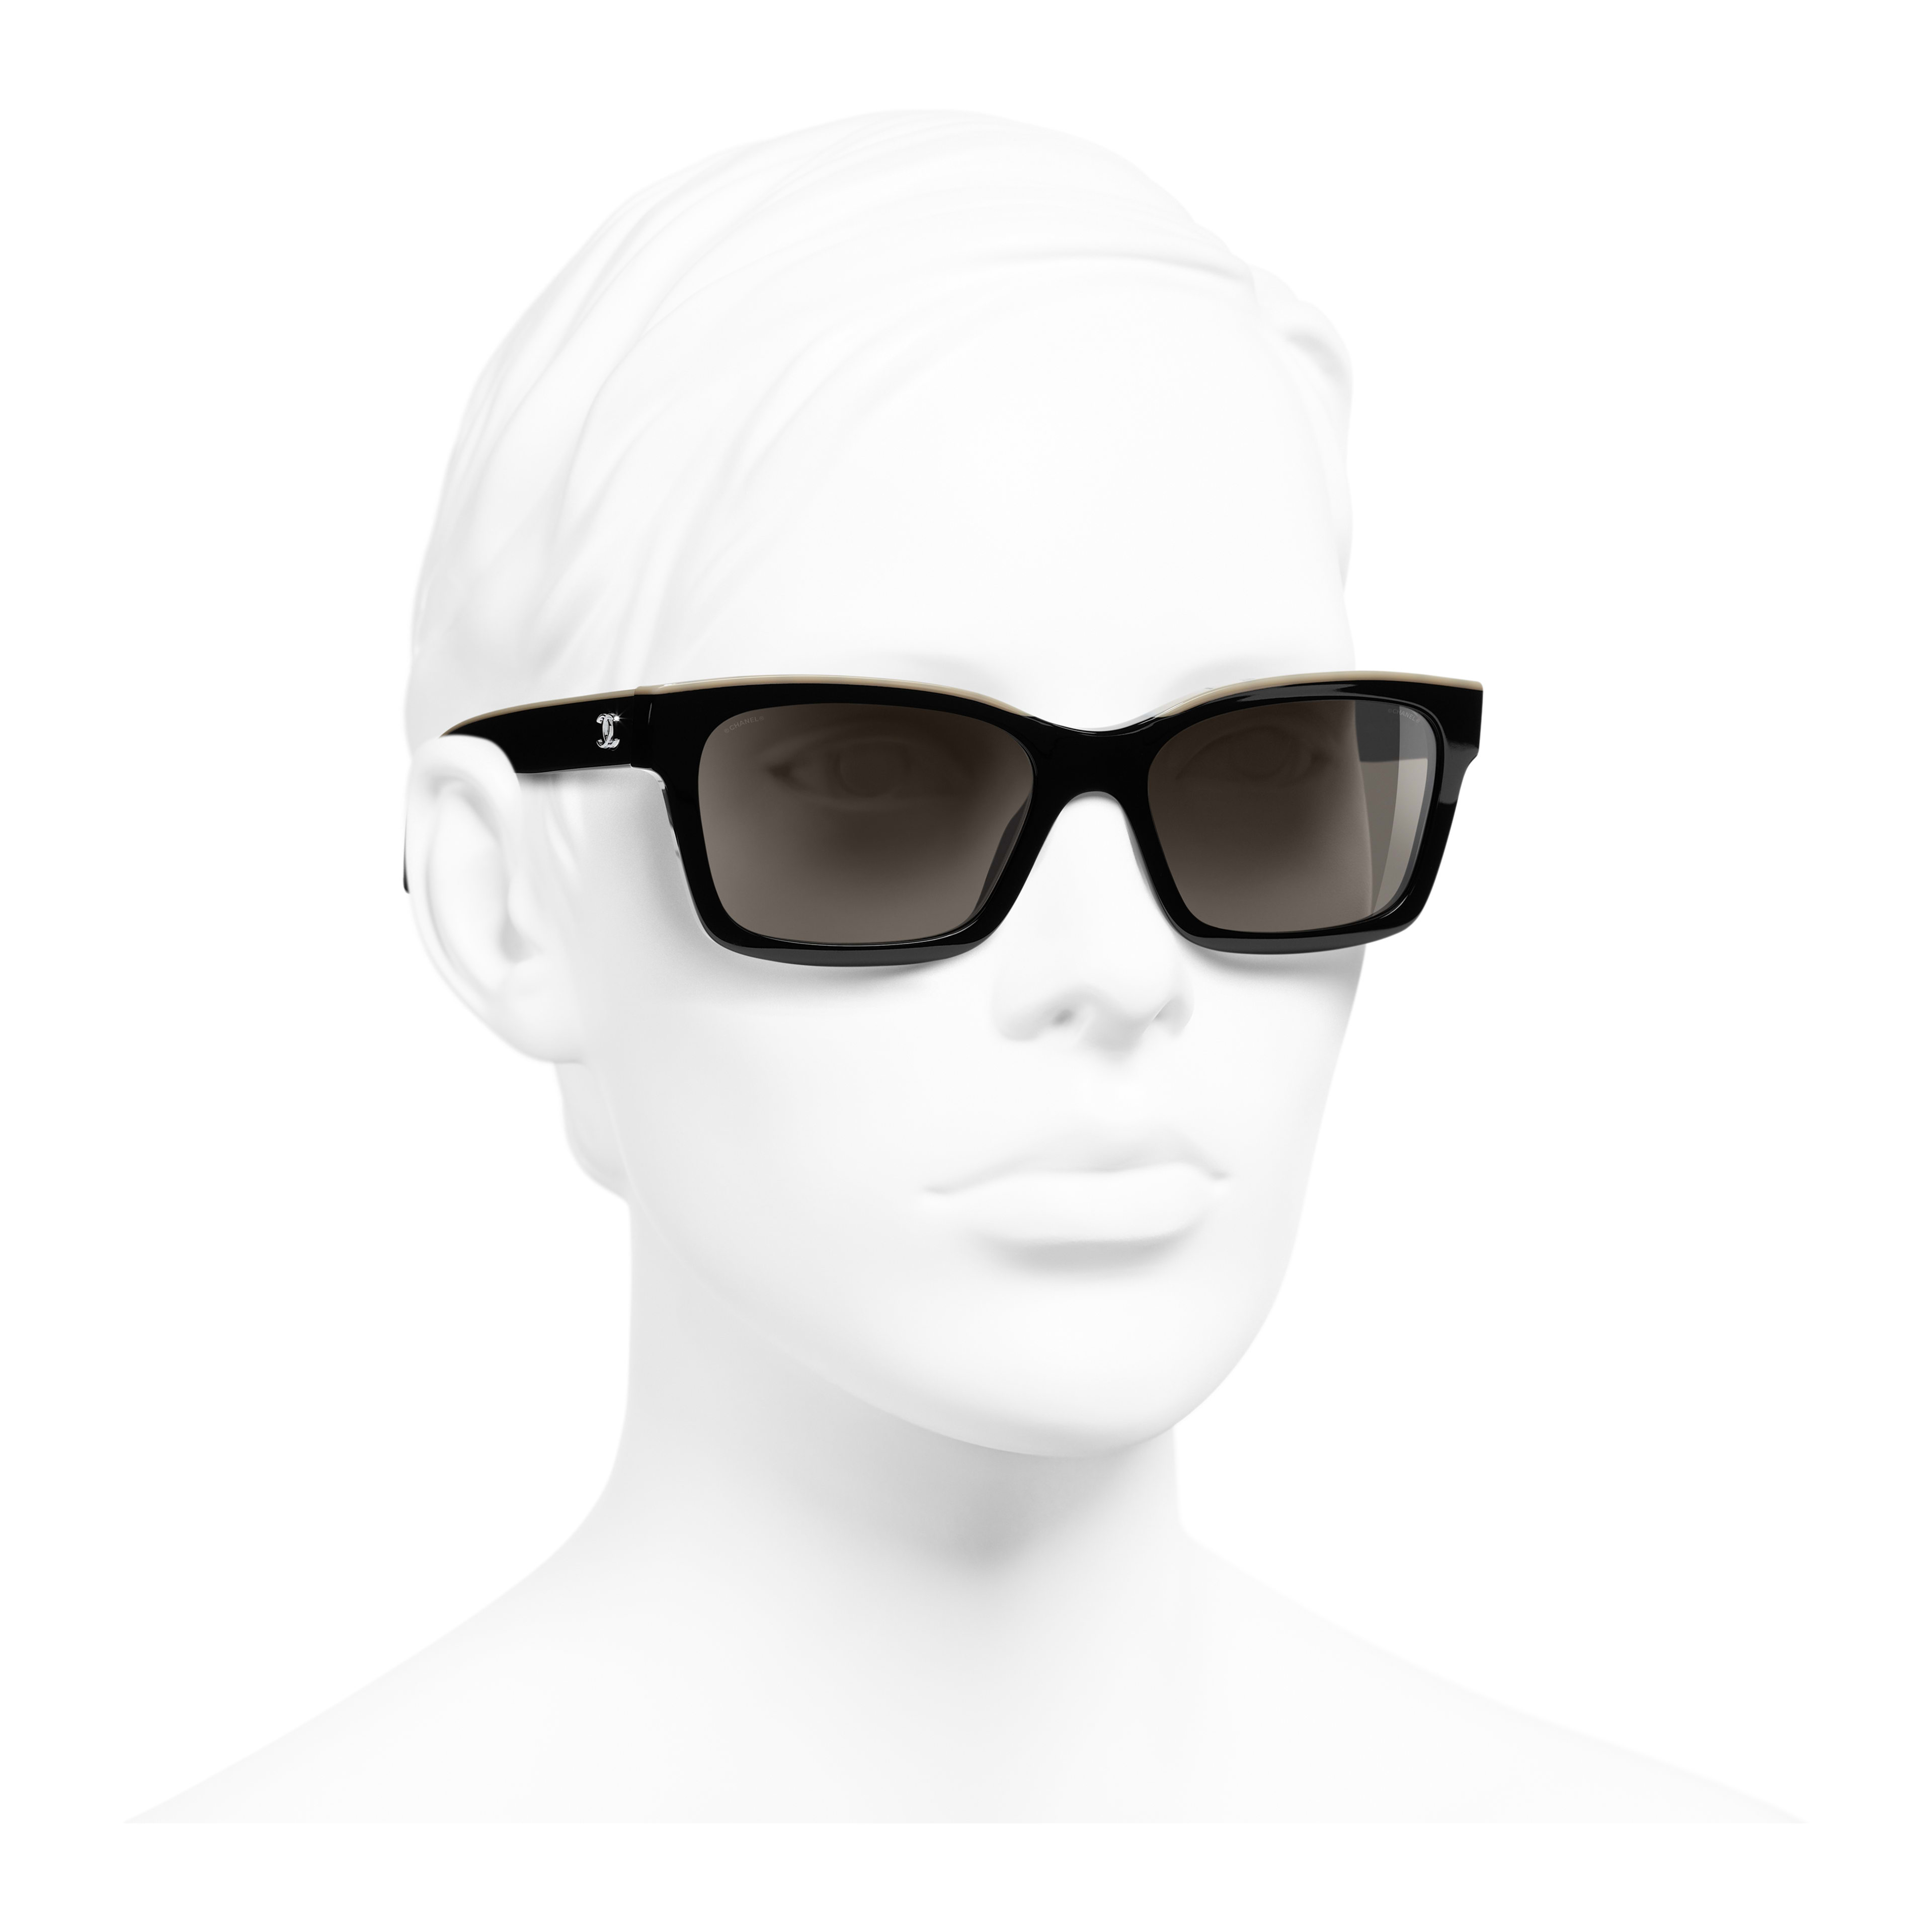 Square Sunglasses - Black & Beige - Acetate - Worn 3/4 view - see full sized version